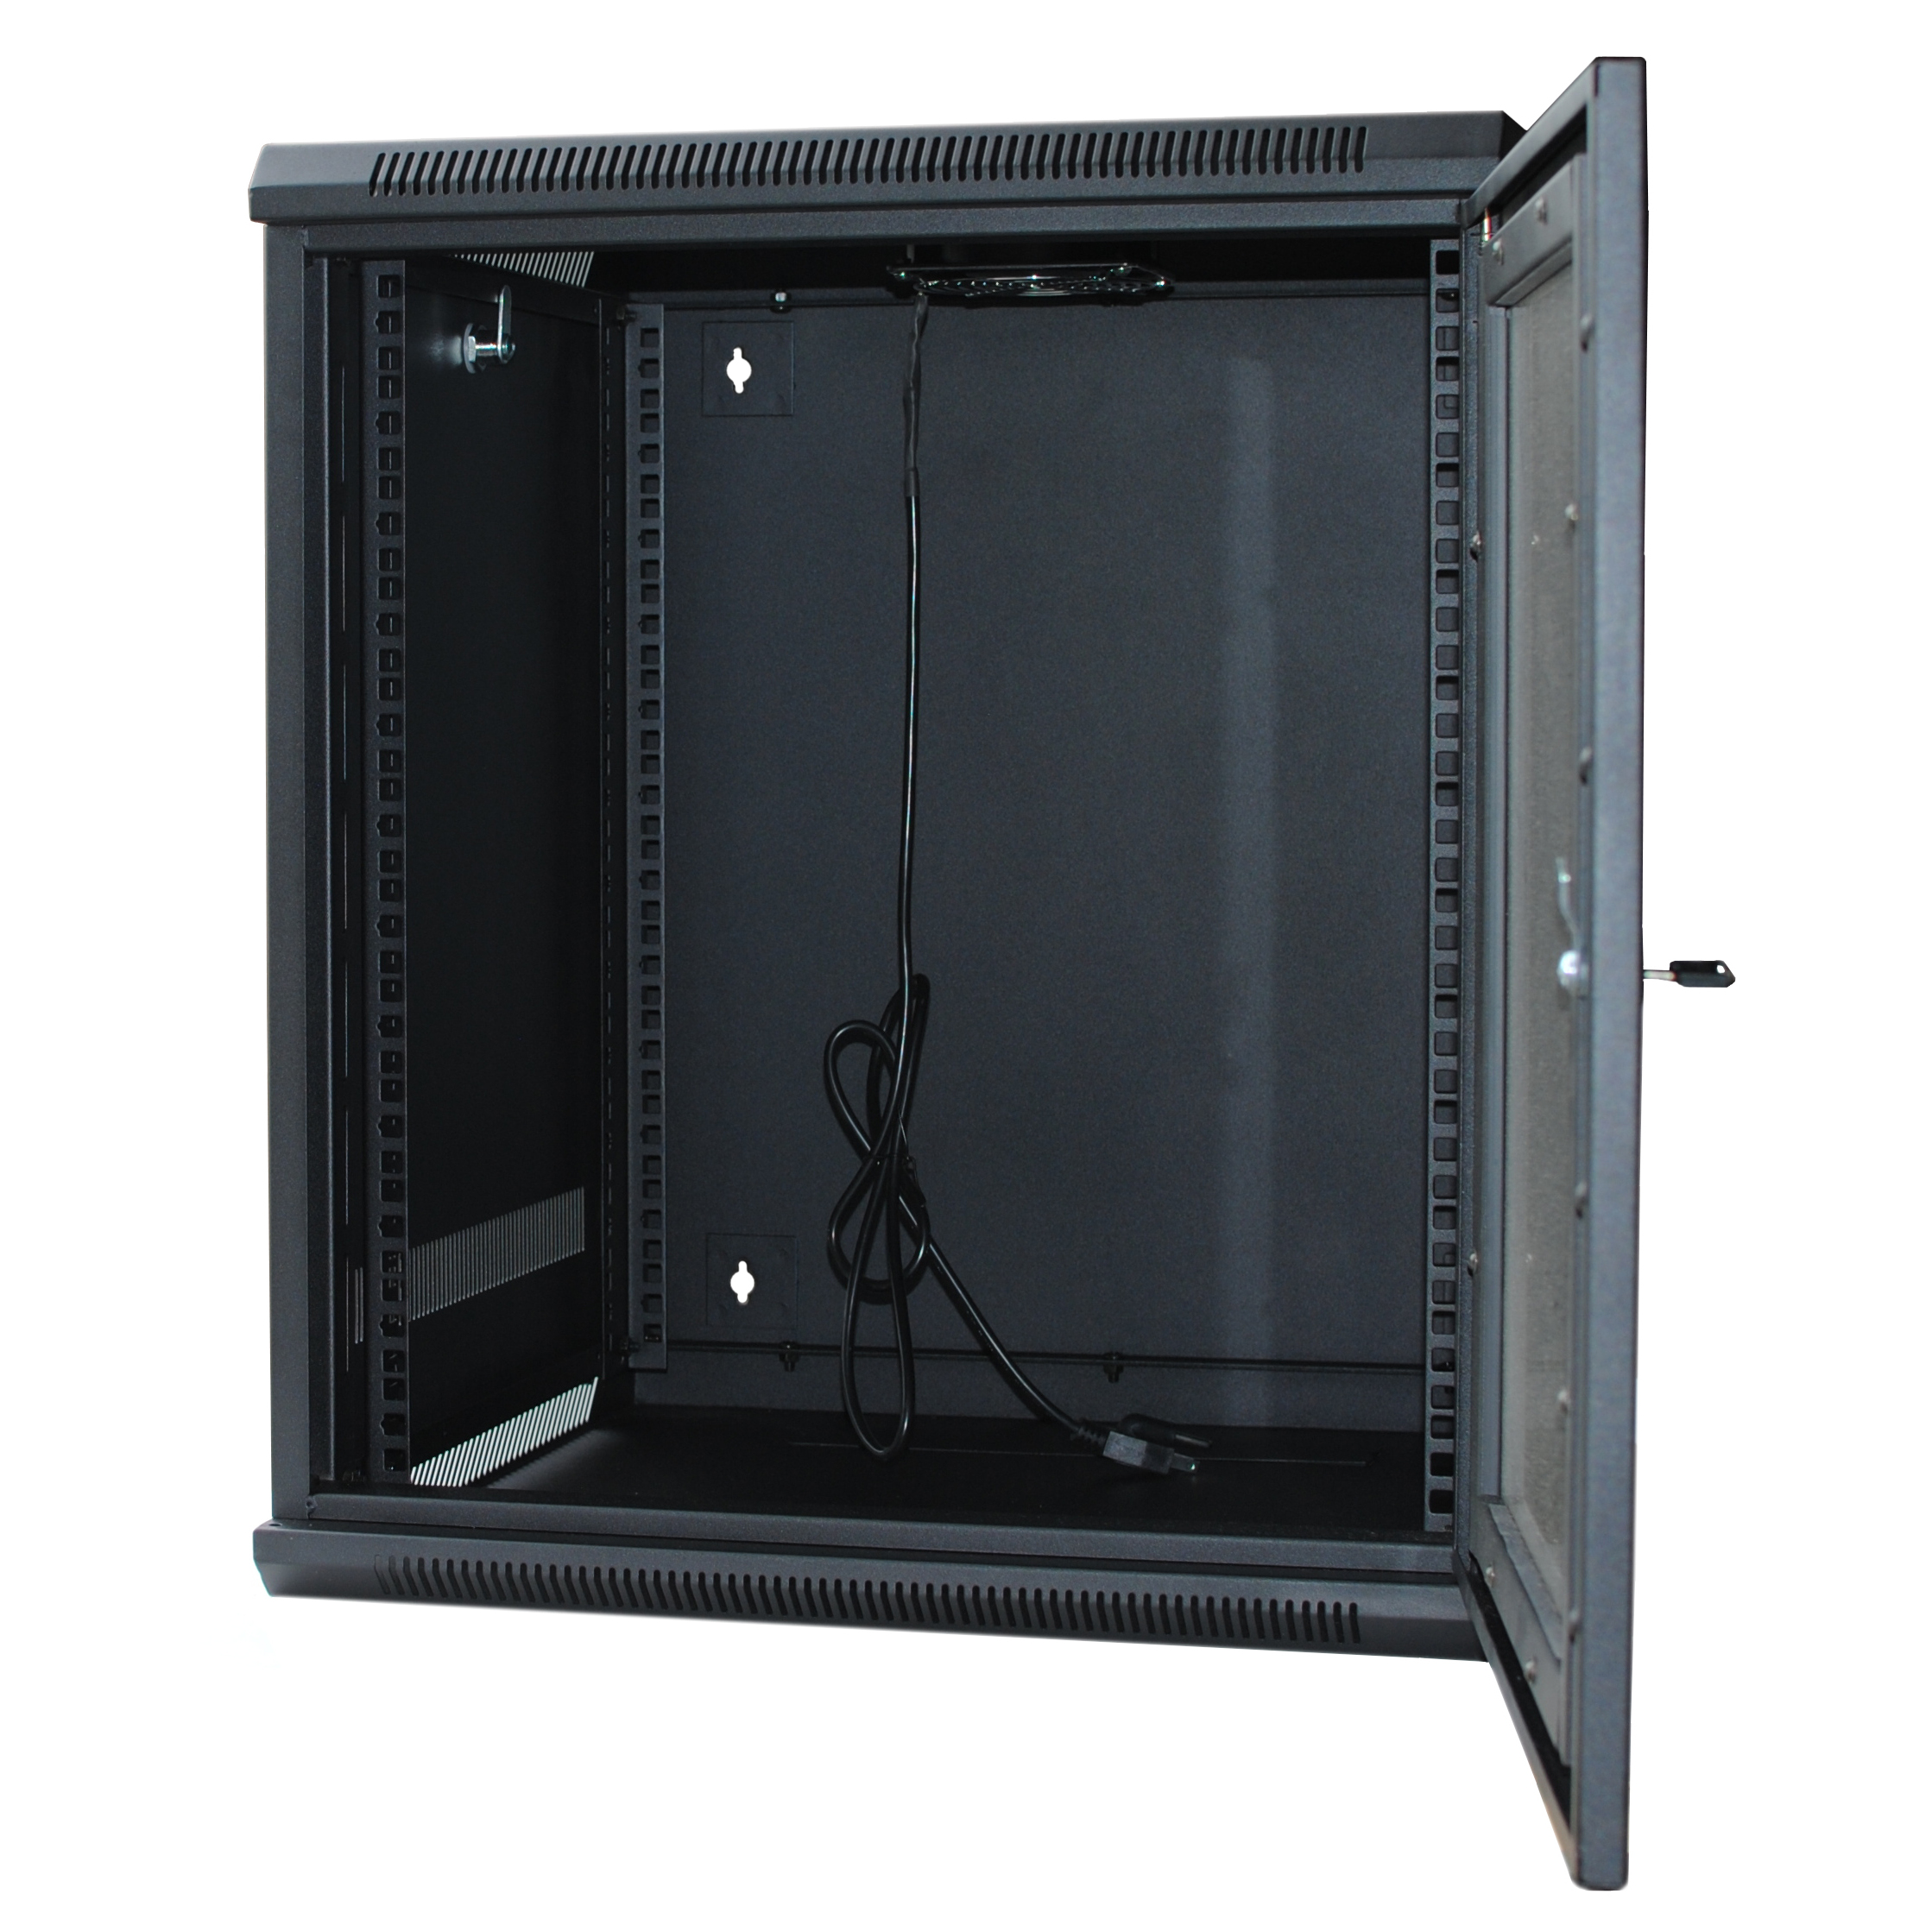 Wall Mount Cabinet With Lock 120054gx 9u Wall Mount Cabinet Rack W Locking Glass Door